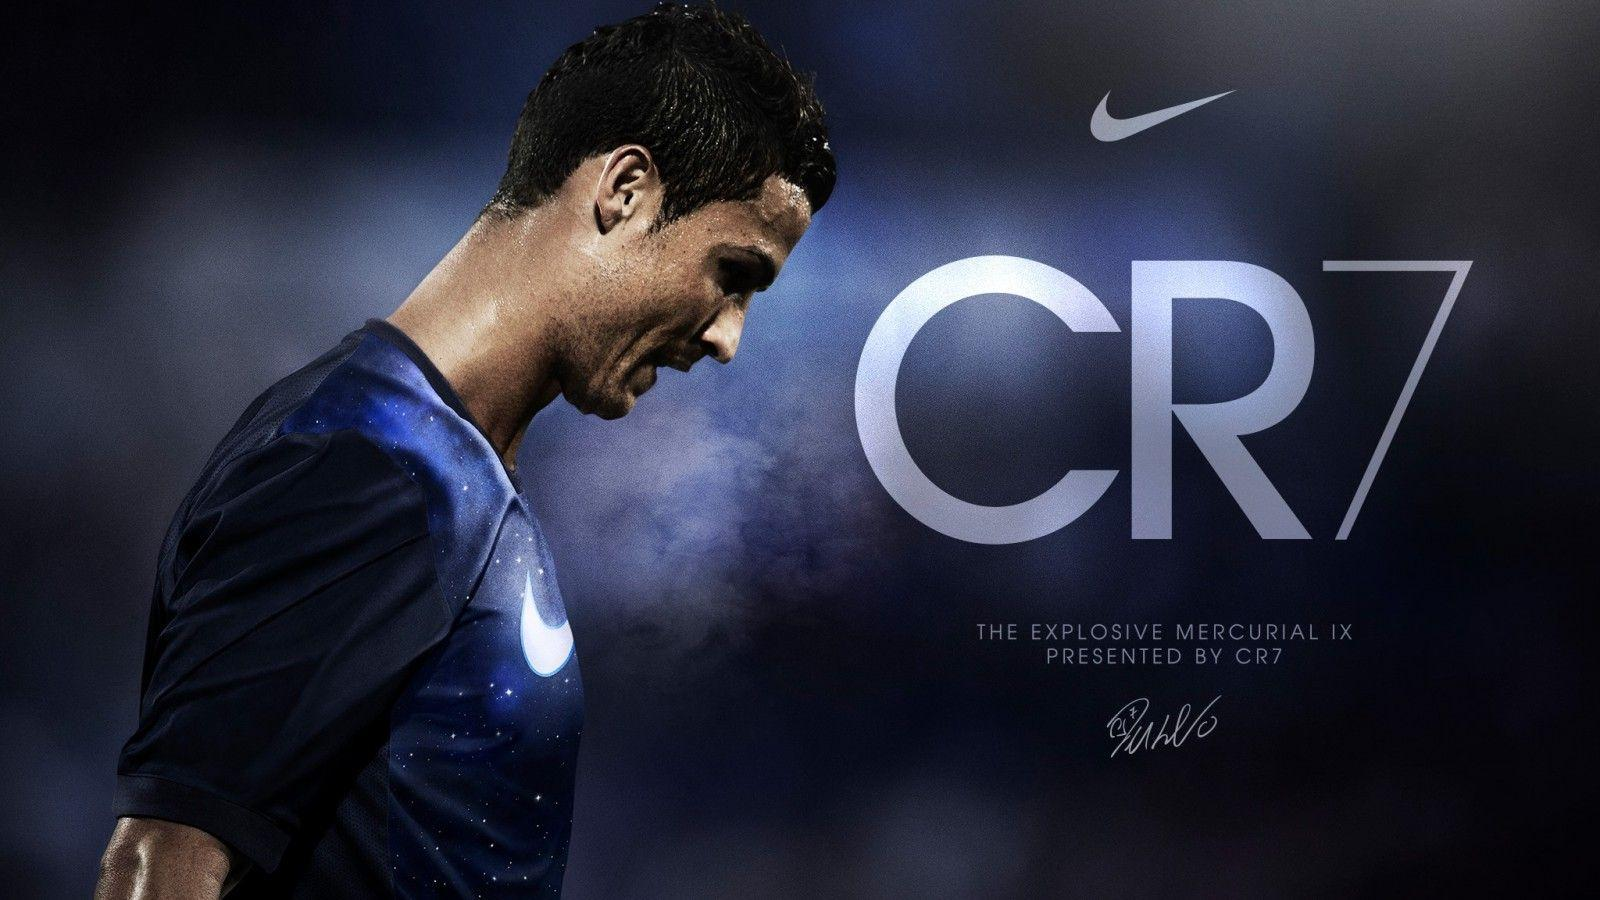 Cristiano Ronaldo Artwork Football Player HD Wallpaper #3462 .